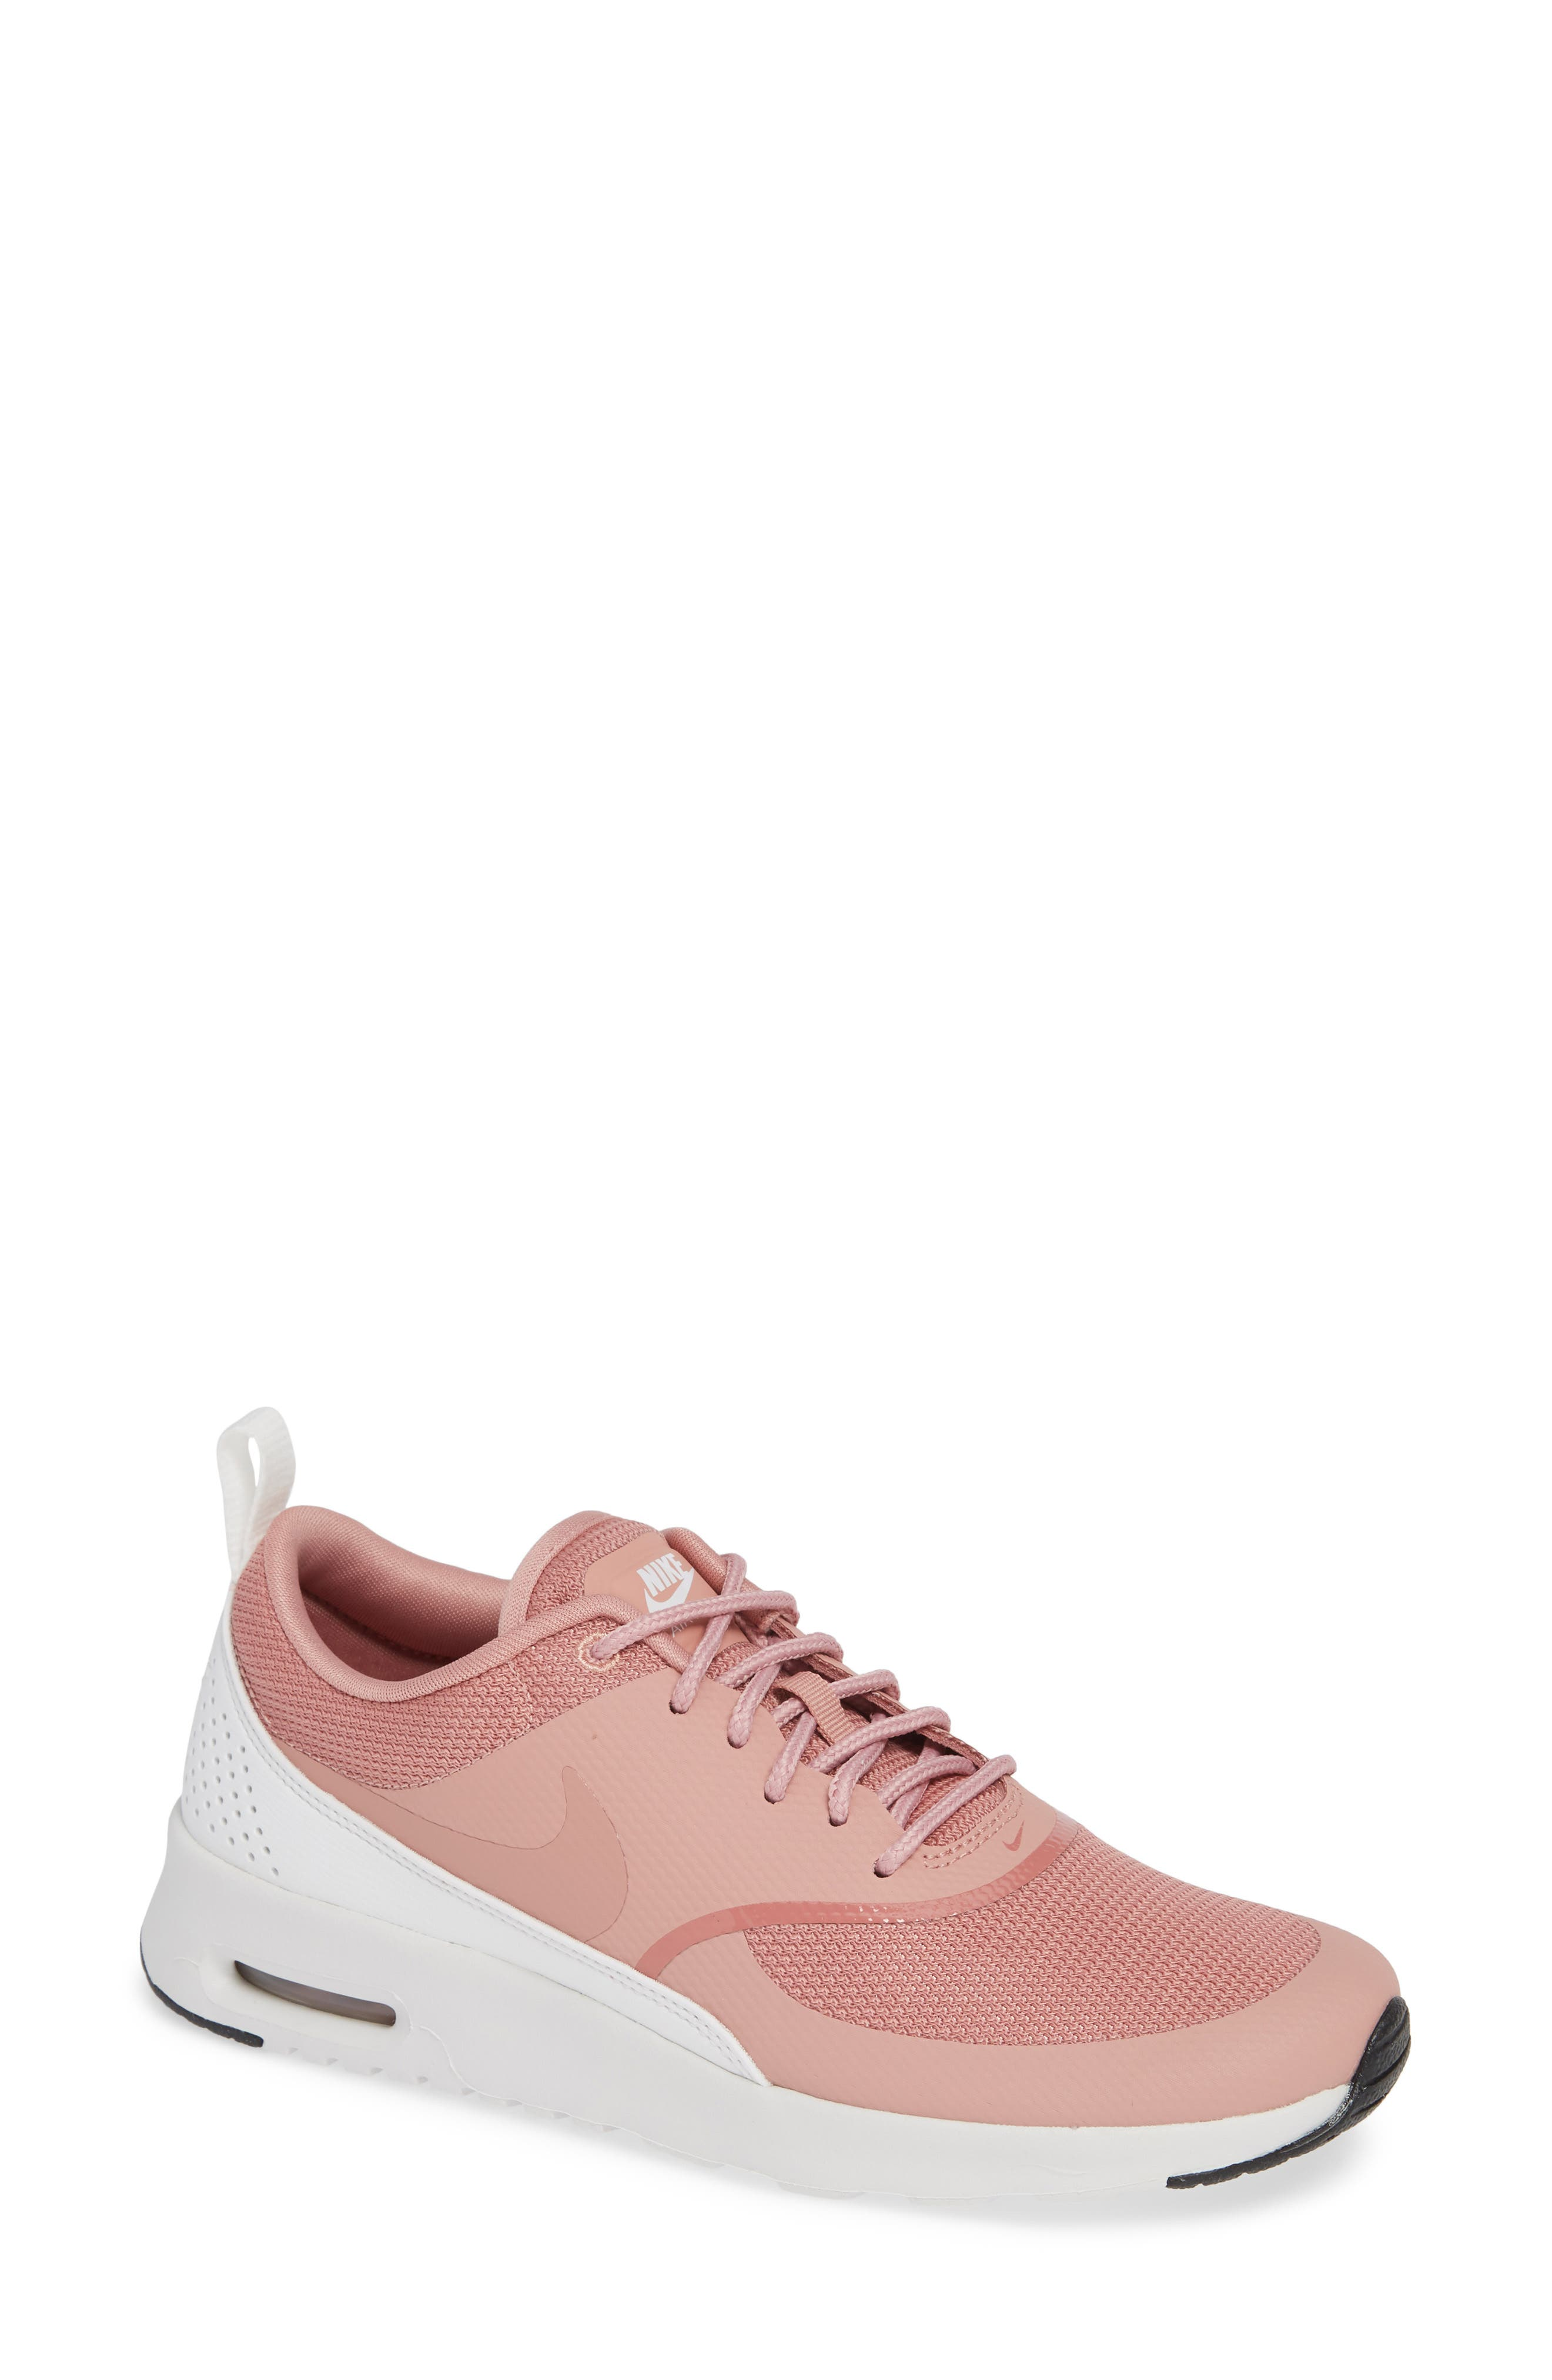 Air Max Thea Sneaker,                             Main thumbnail 1, color,                             RUST PINK/ WHITE/ BLACK